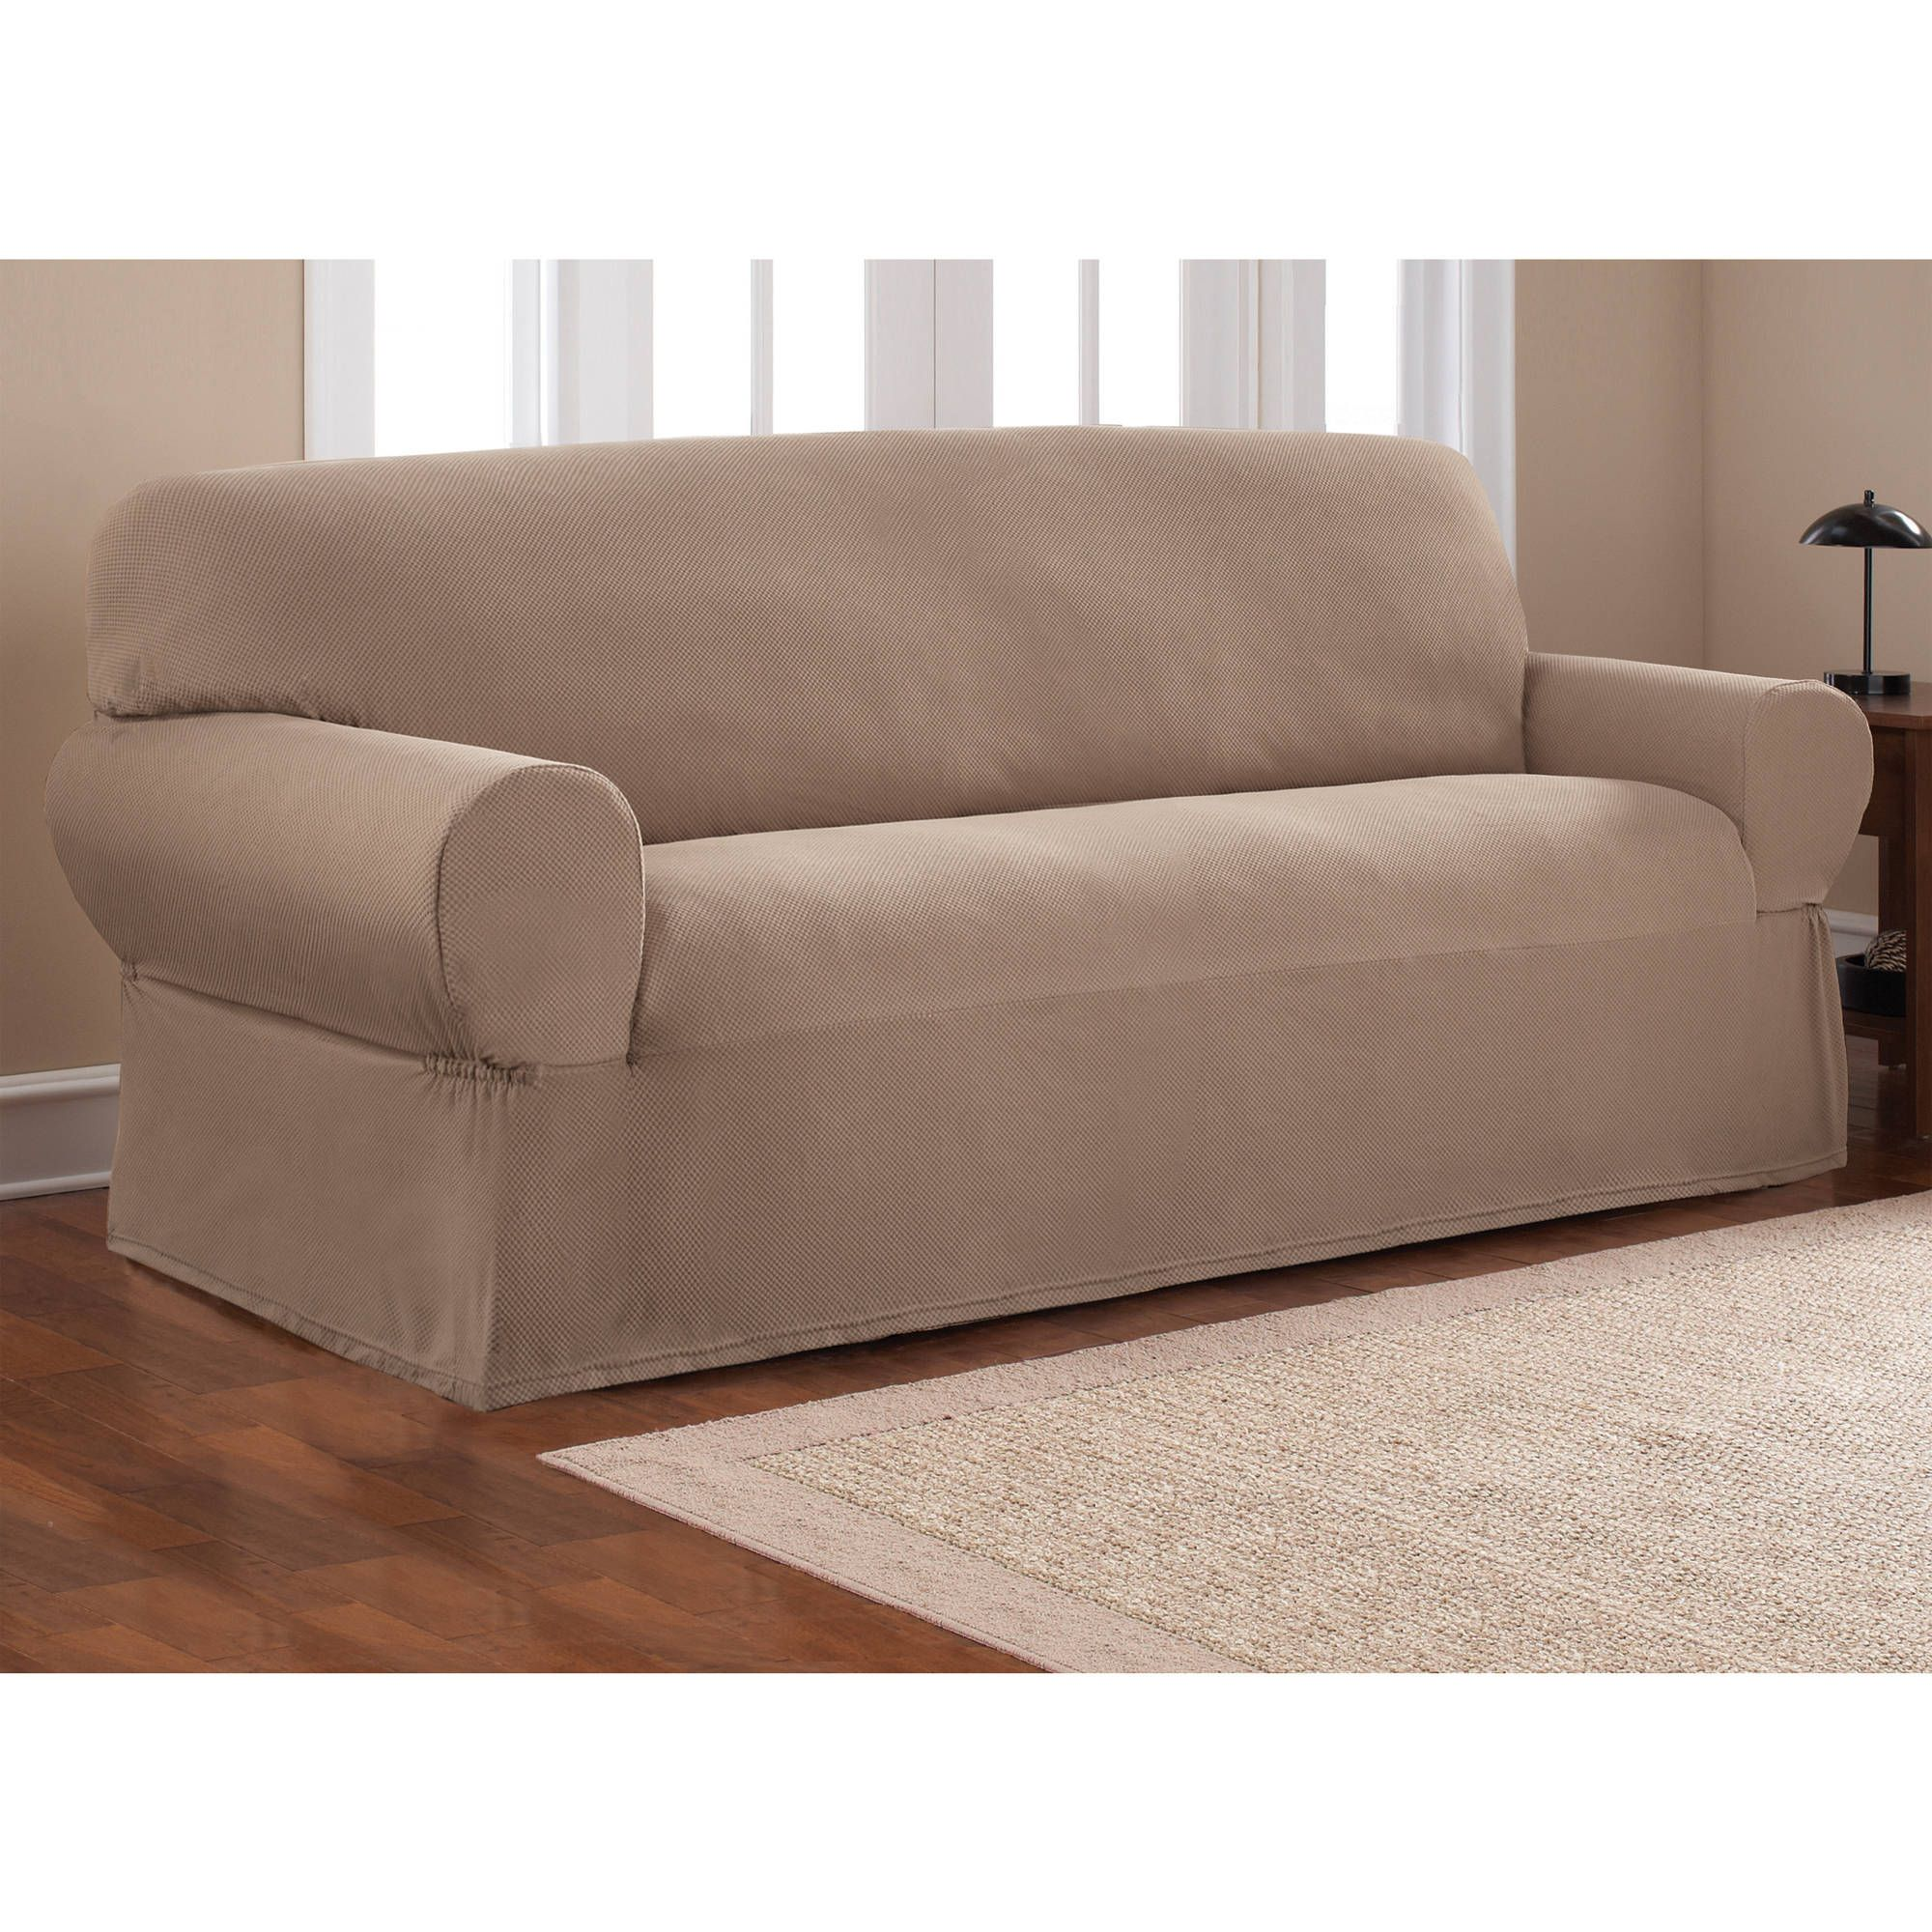 10 Target Sofa Cover Most Awesome As Well As Lovely Recliner Cover Sofa Covers Couch Covers